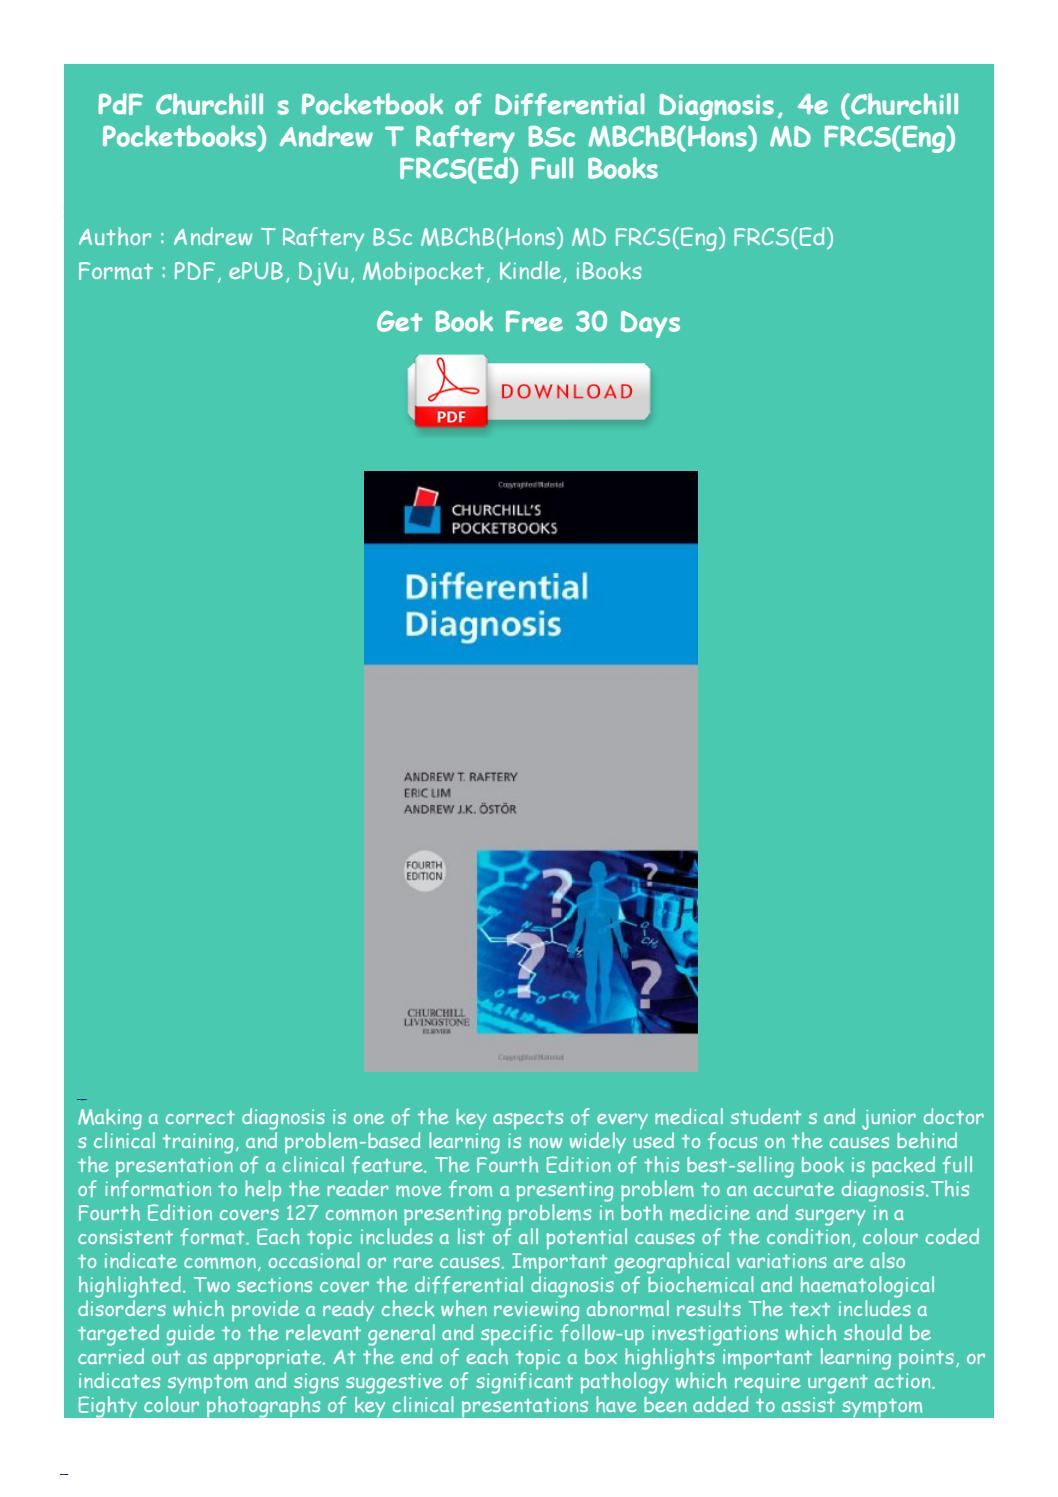 Churchills Pocketbook Of Differential Diagnosis 4th Edition Pdf